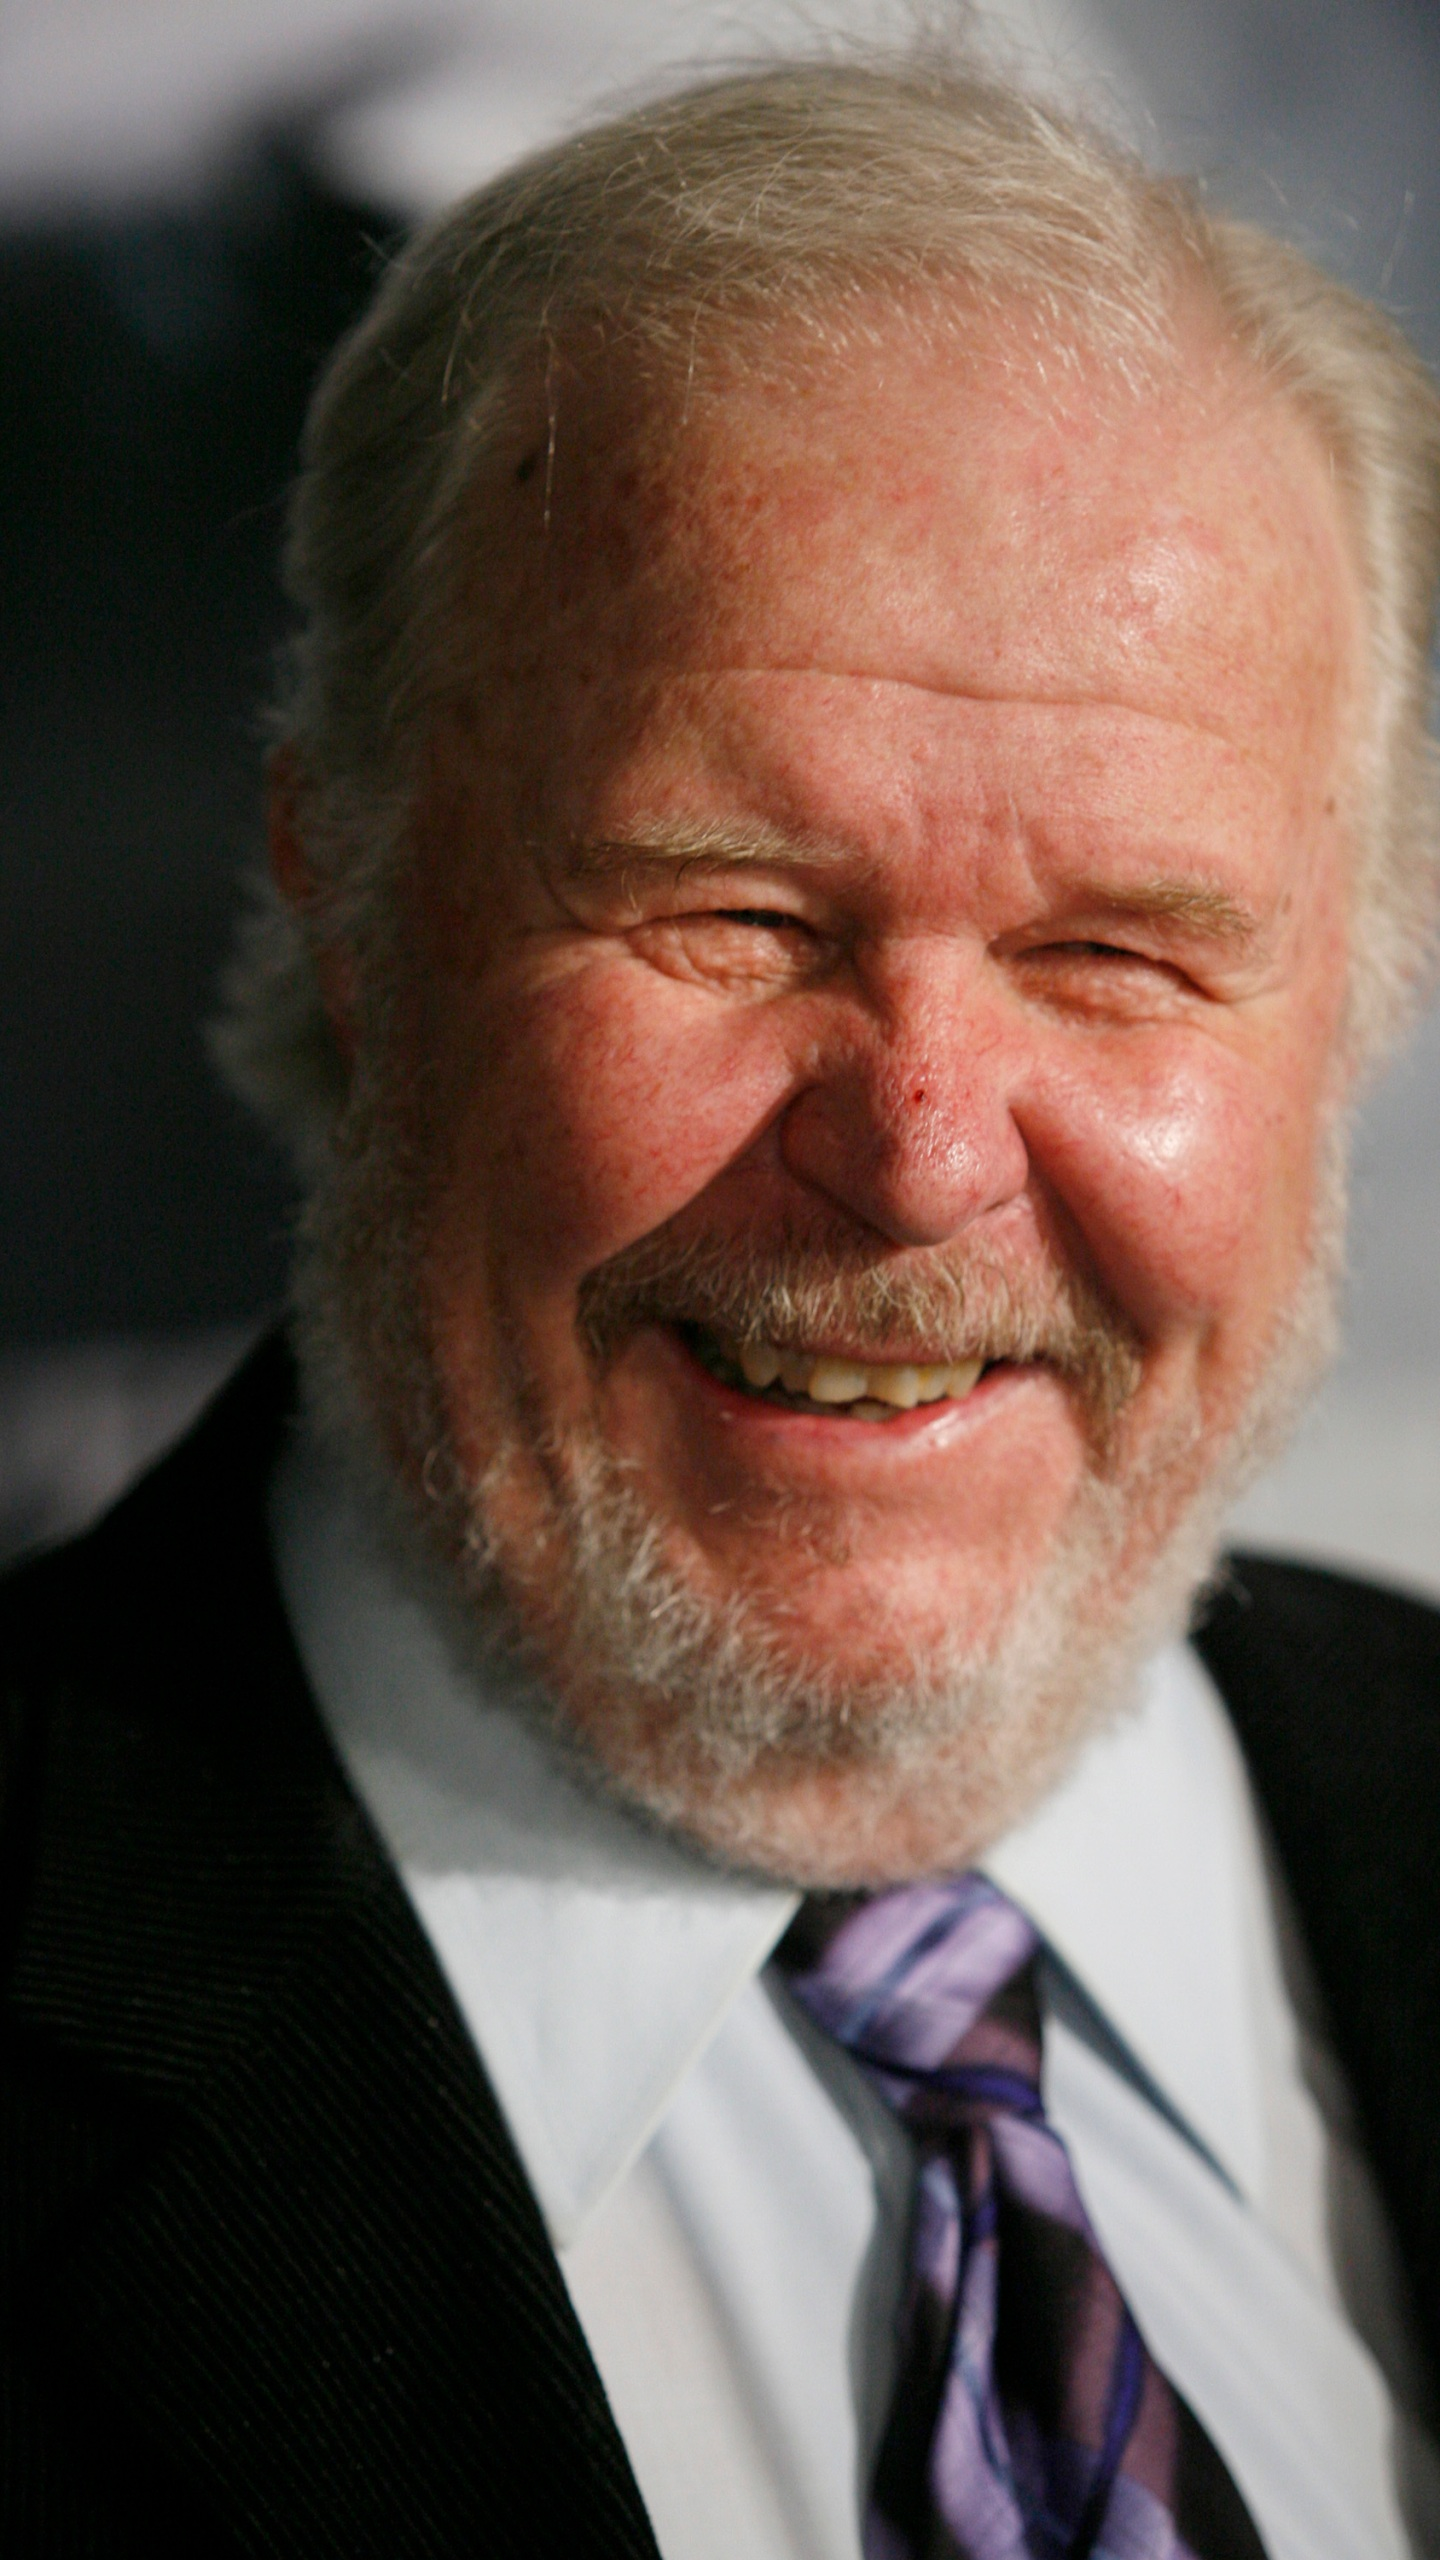 """FILE - In this Thursday, March 8, 2007, file photo, actor Ned Beatty arrives at the premiere of the movie """"Shooter,"""" in Los Angeles. Beatty, the indelible character actor whose first film role, as a genial vacationer brutally raped by a backwoodsman in 1972′s """"Deliverance,"""" launched him on a long, prolific and accomplished career, died Sunday, June 13, 2021. He was 83. (AP Photo/Gus Ruelas, File)"""